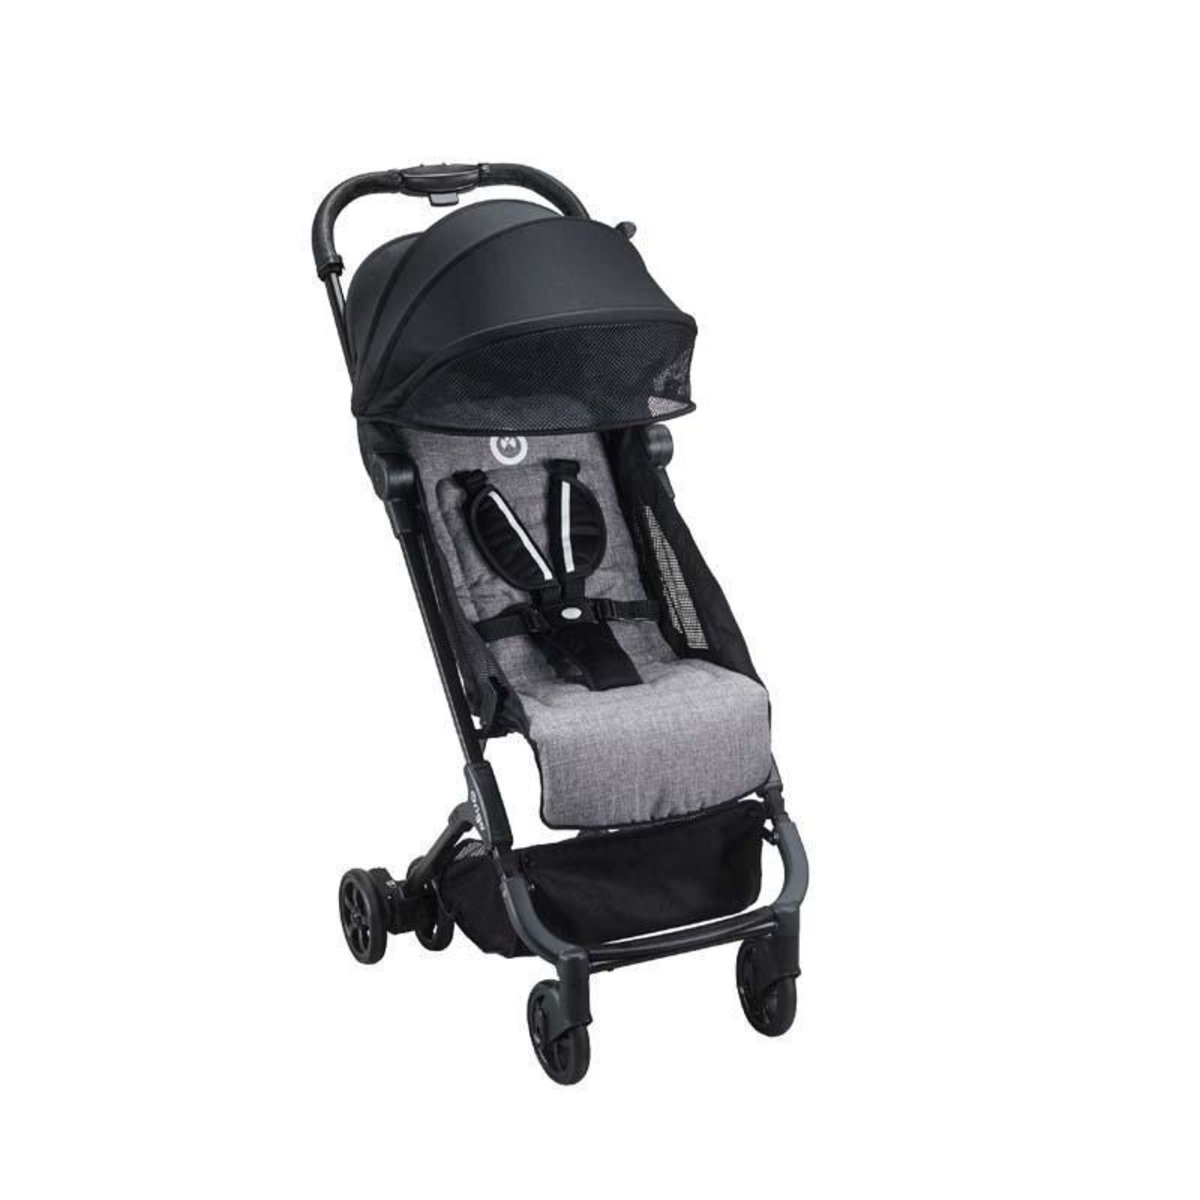 Bubble feather lightweight folding stroller 0-4 years British brands - charcoal black